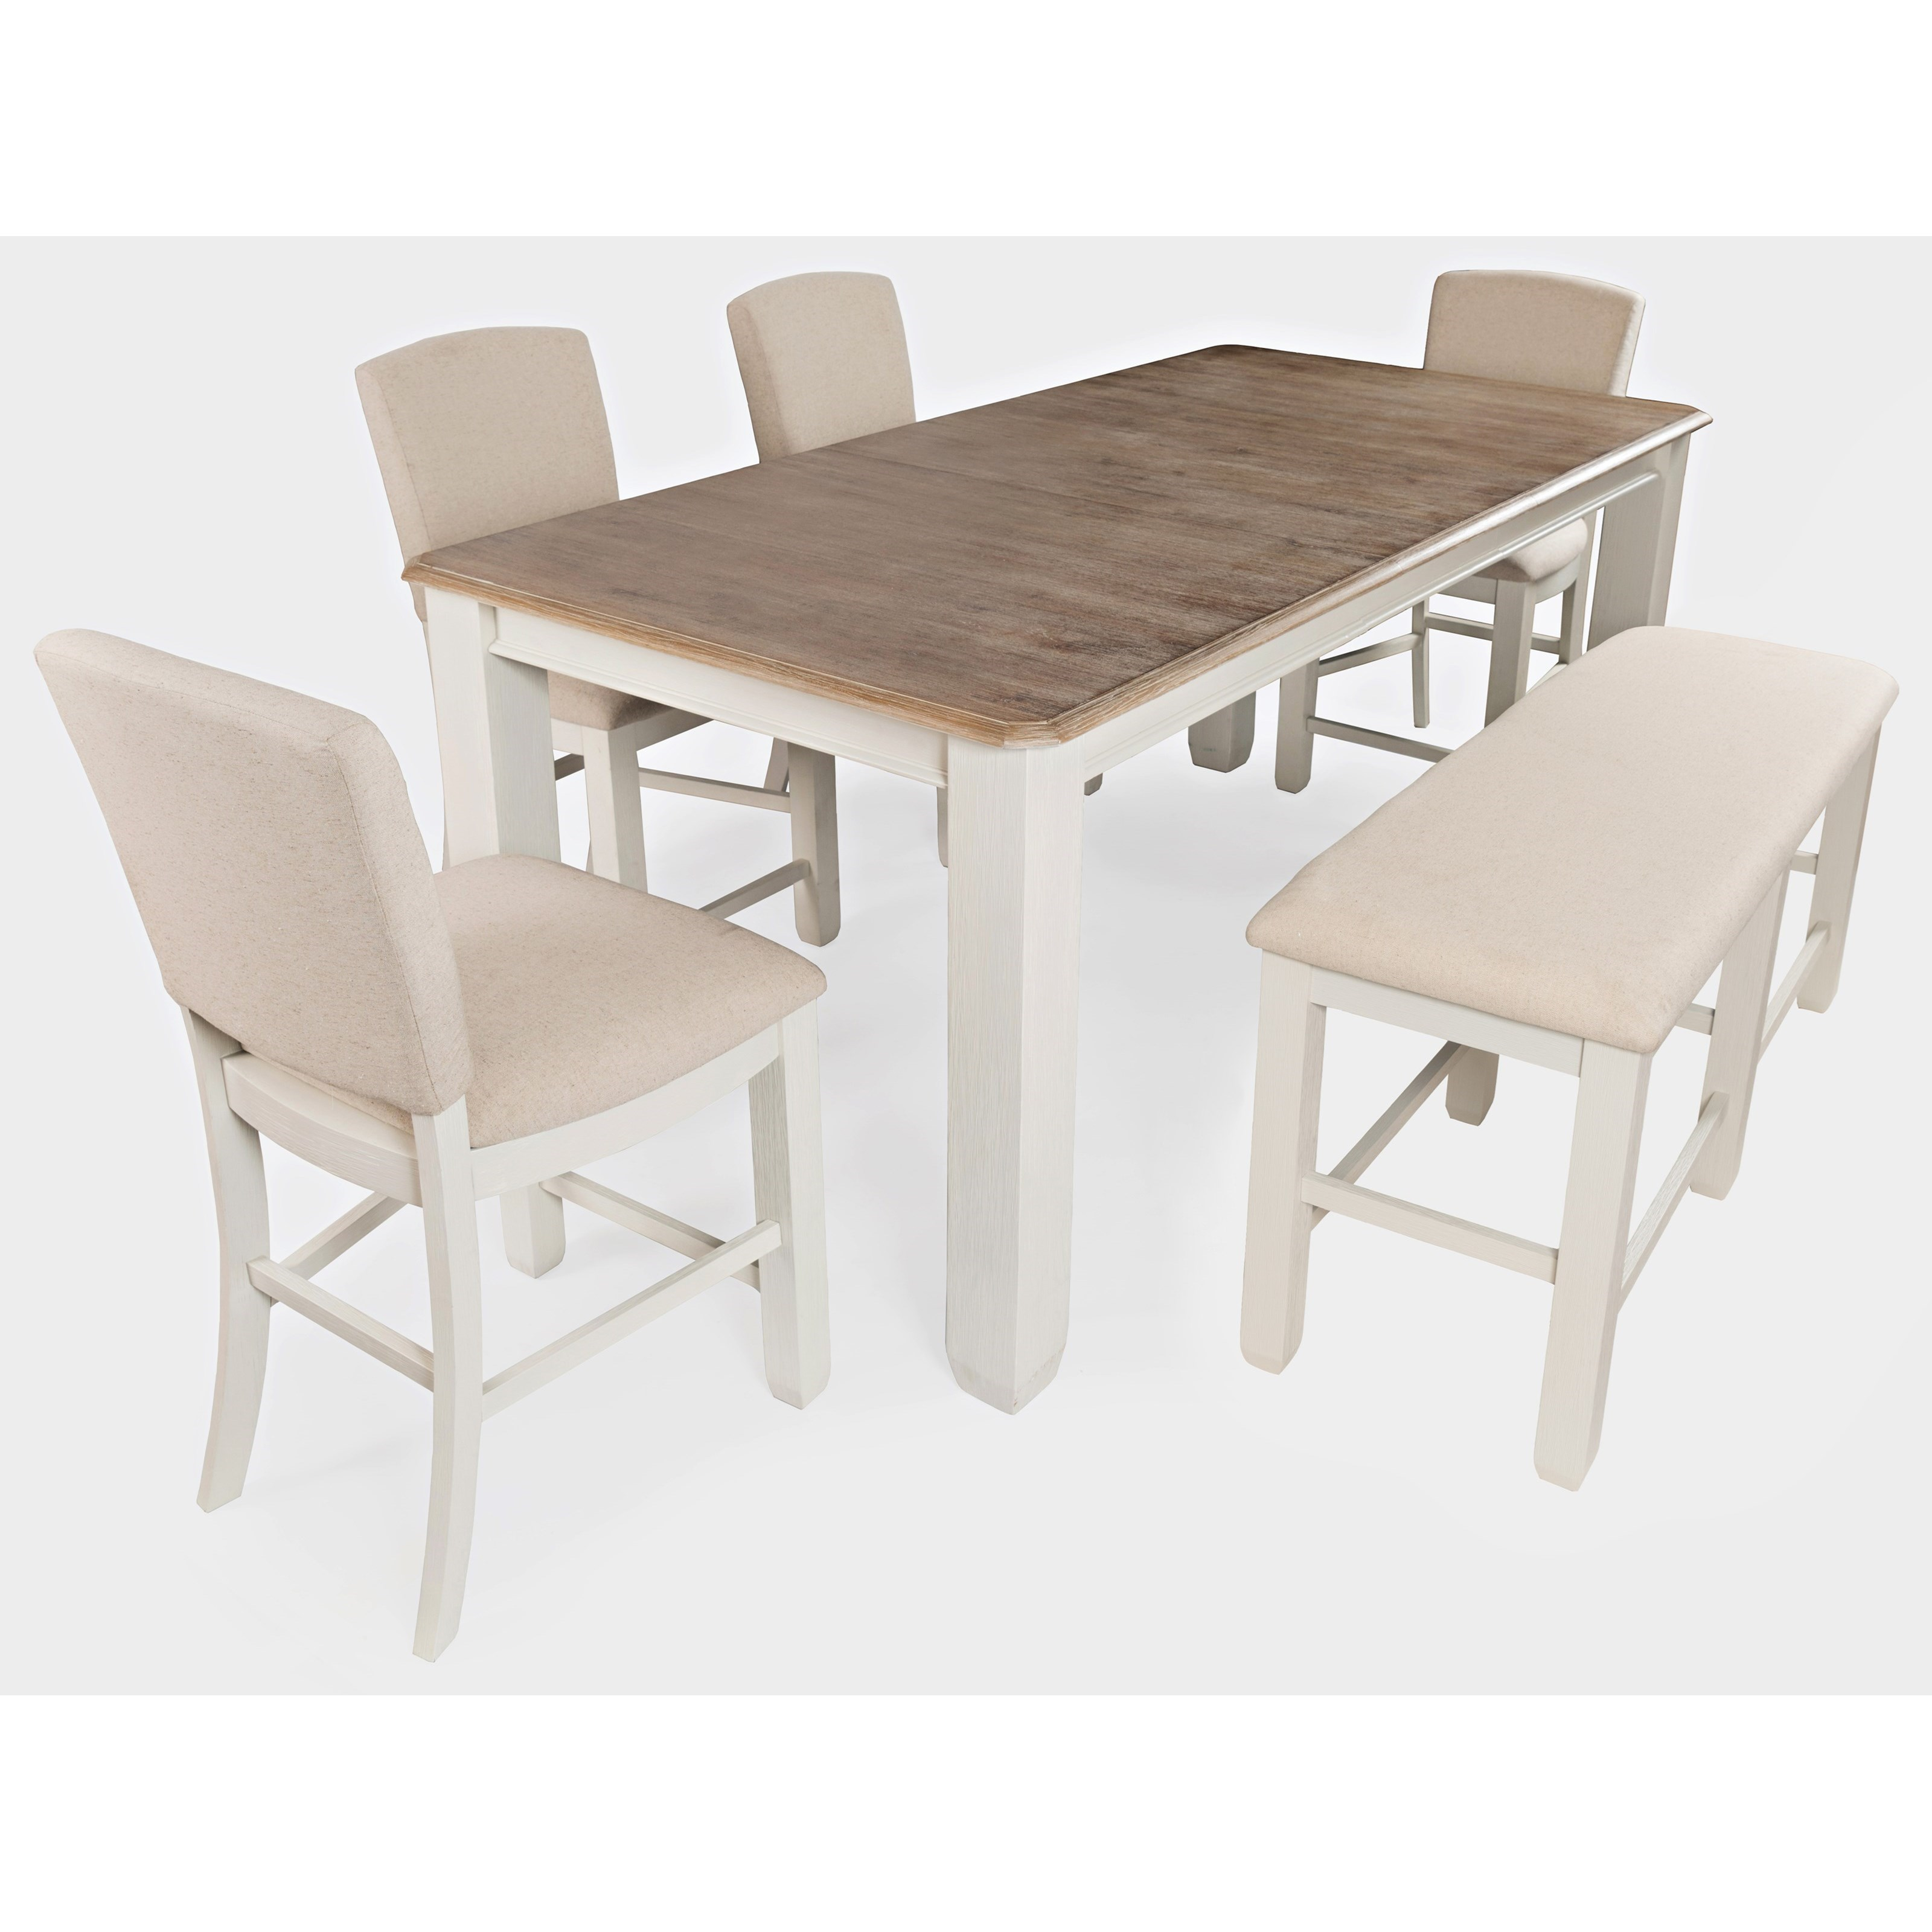 Dana Point 6-Piece Counter Height Table and Chair Set by Jofran at Jofran